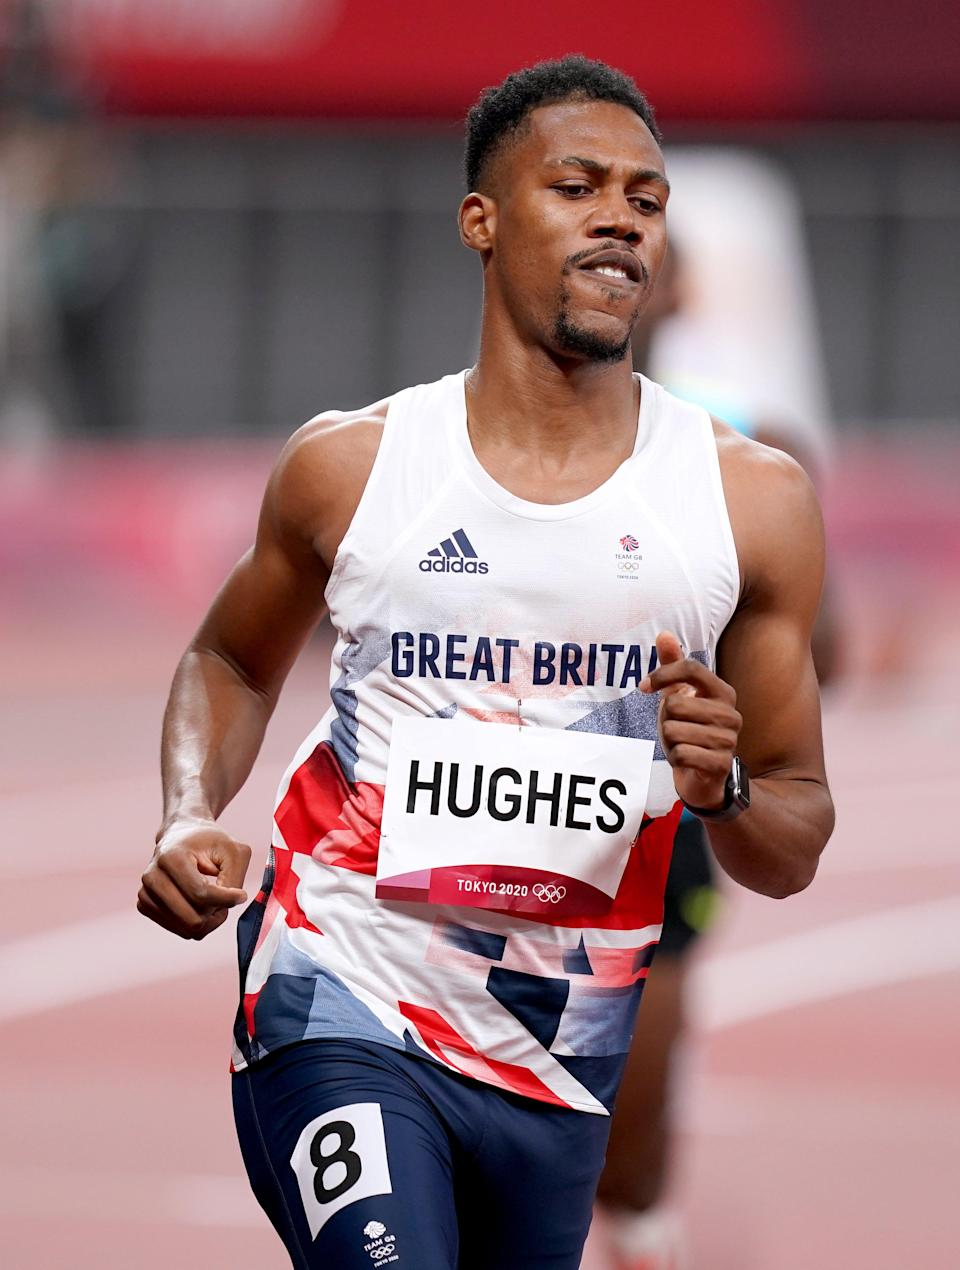 Great Britain's Zharnel Hughes reached the men's 100m semi-finals (Mike Egerton/PA) (PA Wire)